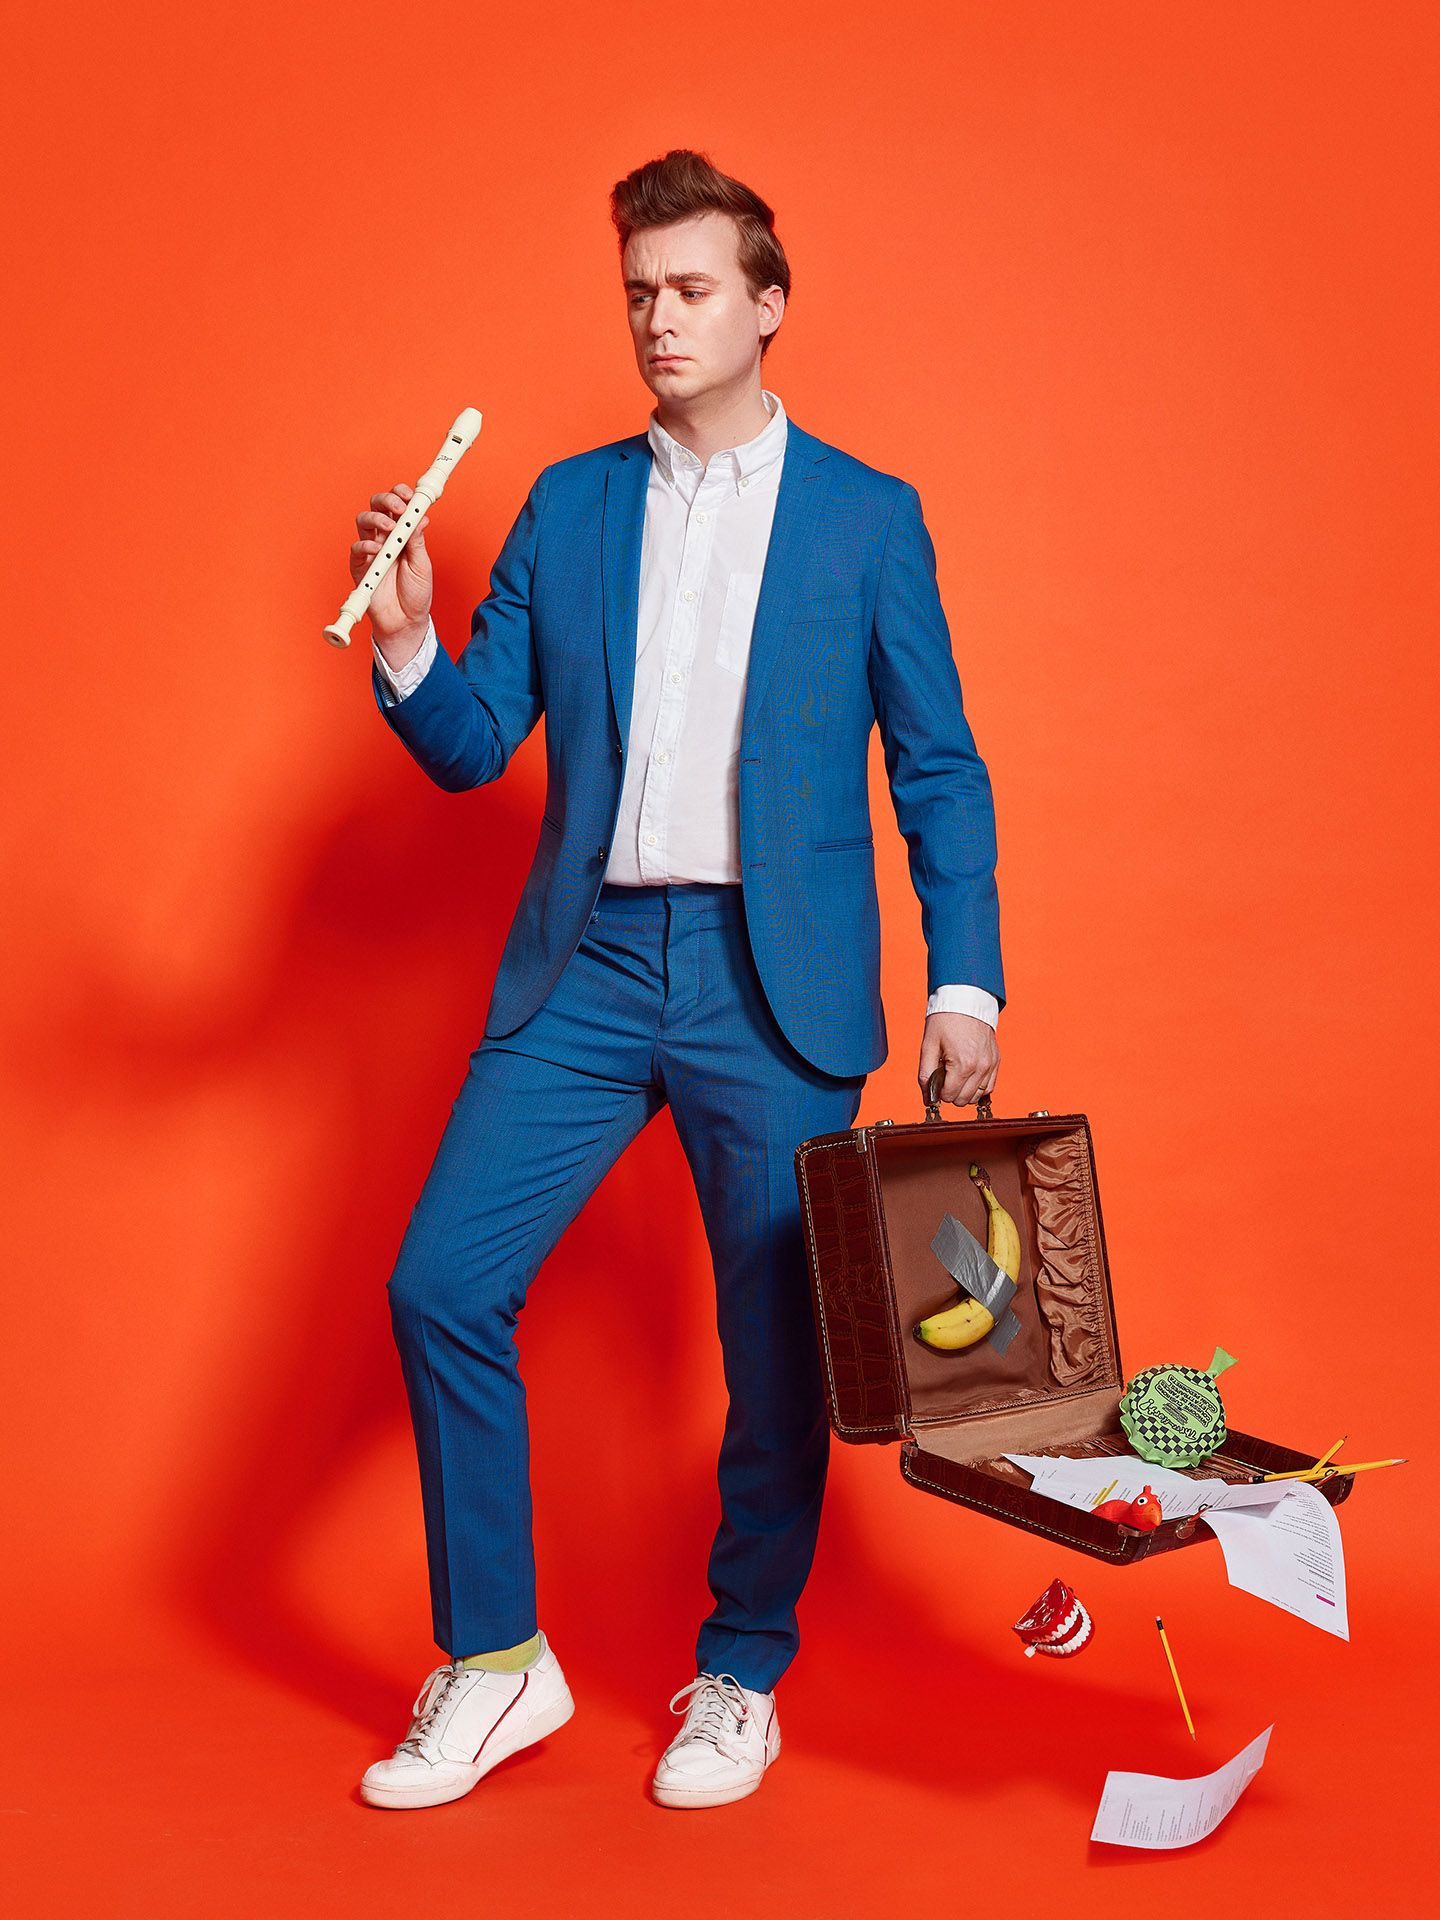 Photo of Arnaud Soly wearing a blue suit, a white shirt, white sneakers. He is holding a flute in one hand and a luggage that is open and from which are falling humor objects.